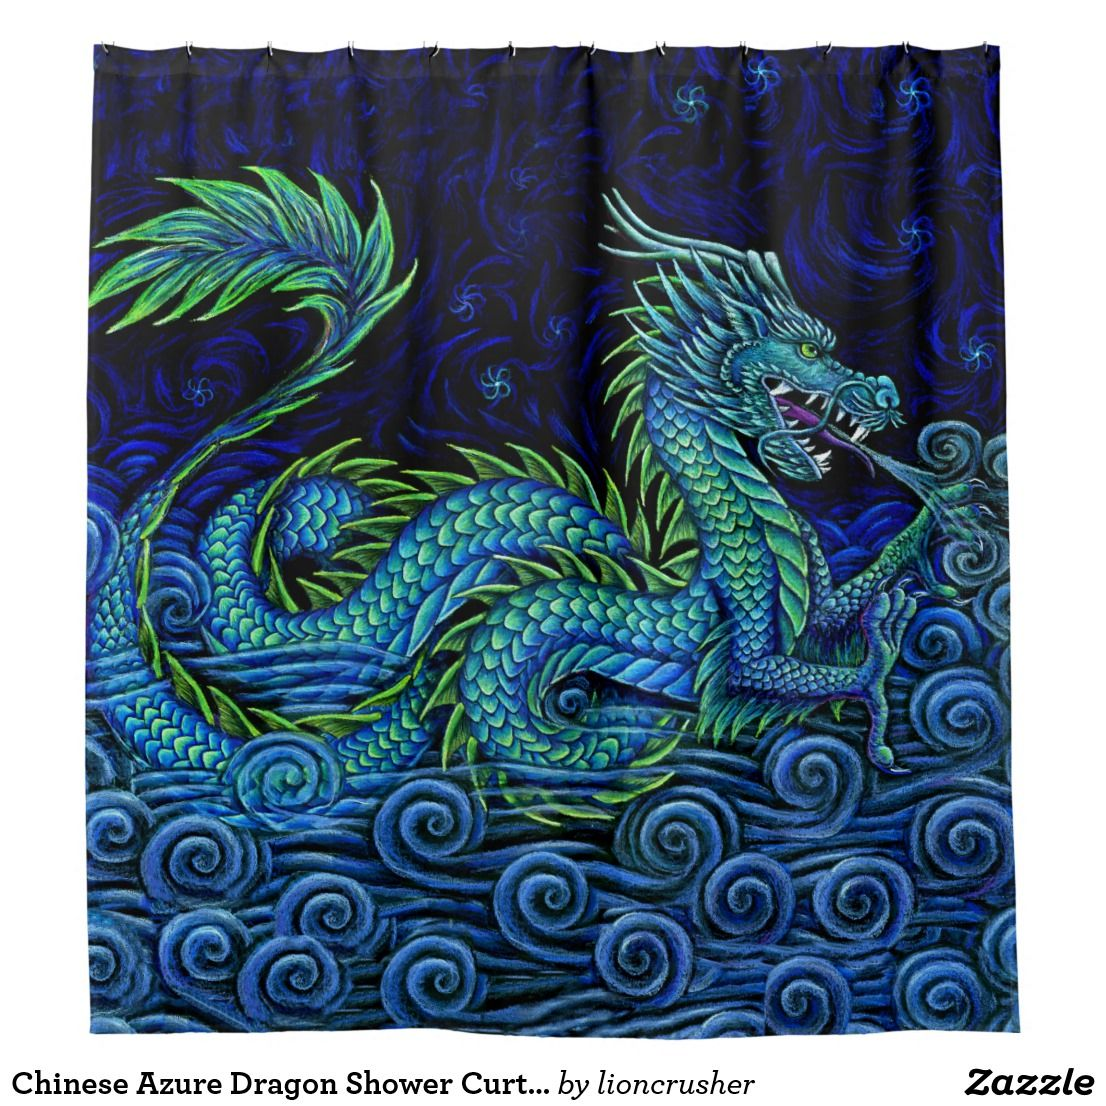 Chinese Azure Dragon Shower Curtain Zazzle Com In 2019 Chinese